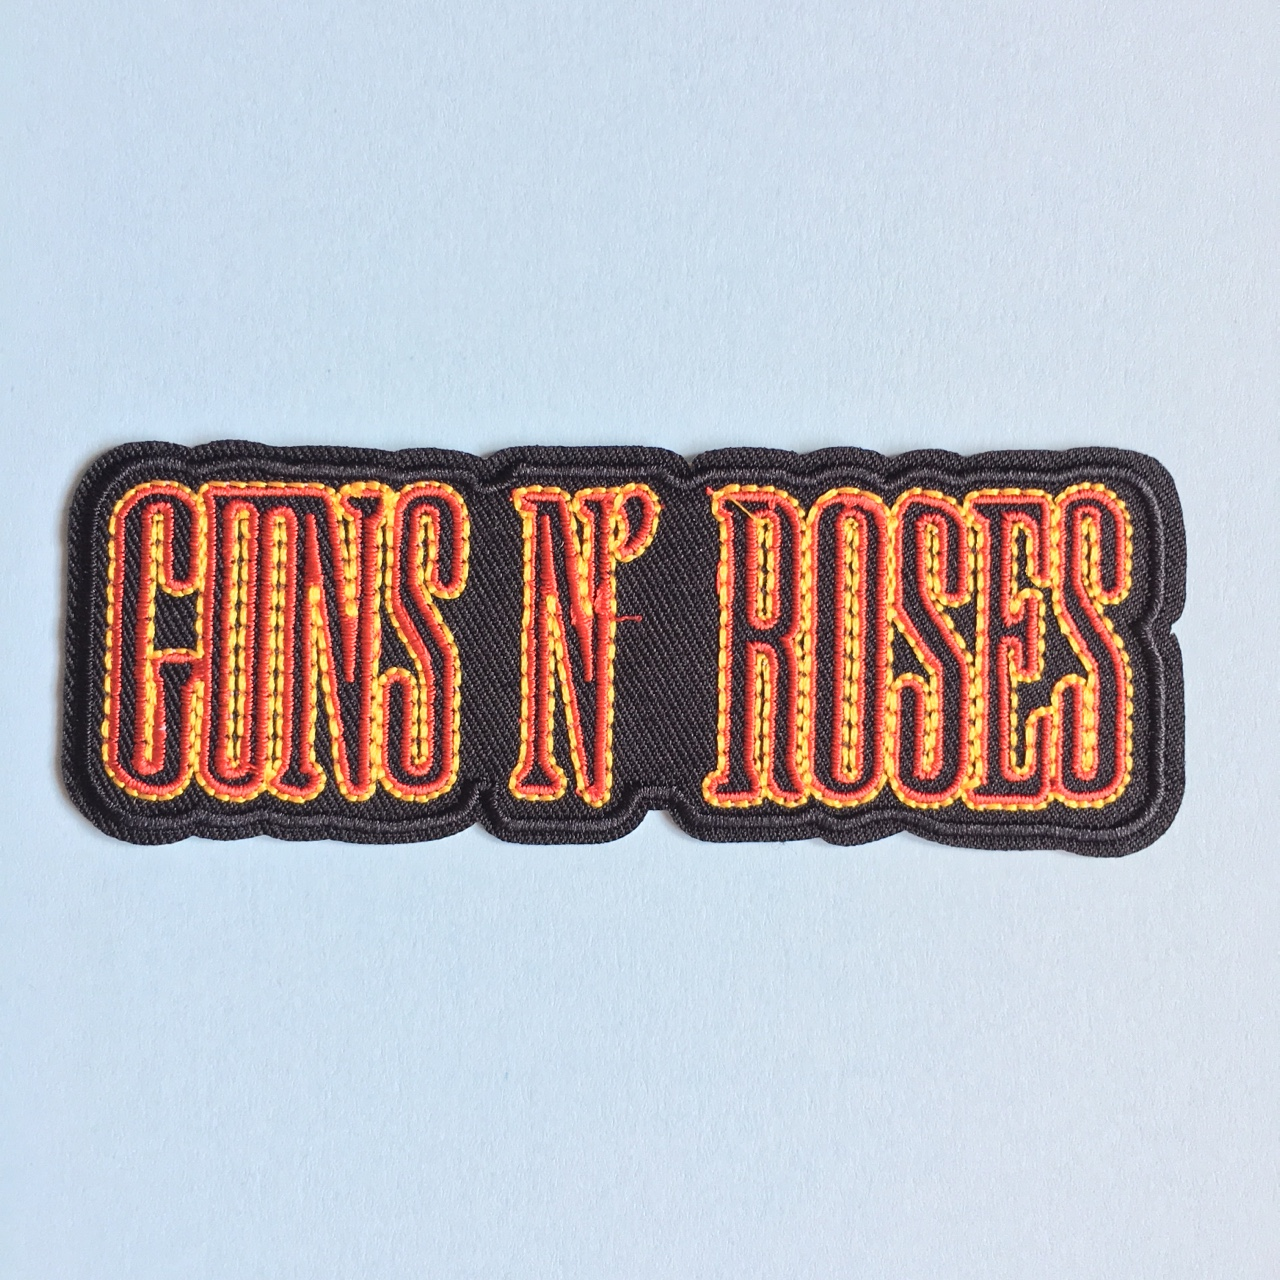 Large Guns N' Roses iron on sew on patch. Perfect Depop